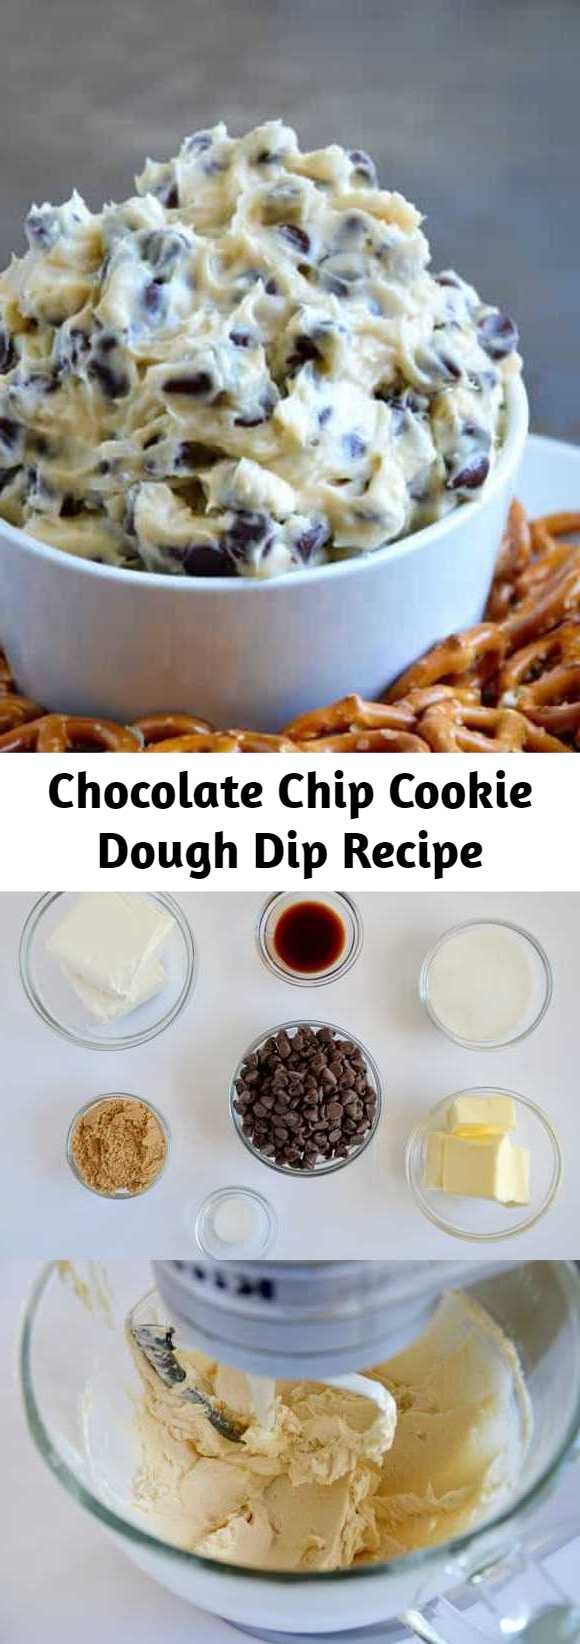 Chocolate Chip Cookie Dough Dip Recipe - Skip the eggs and ditch the oven with a quick and creamy recipe for no-bake Chocolate Chip Cookie Dough Dip!